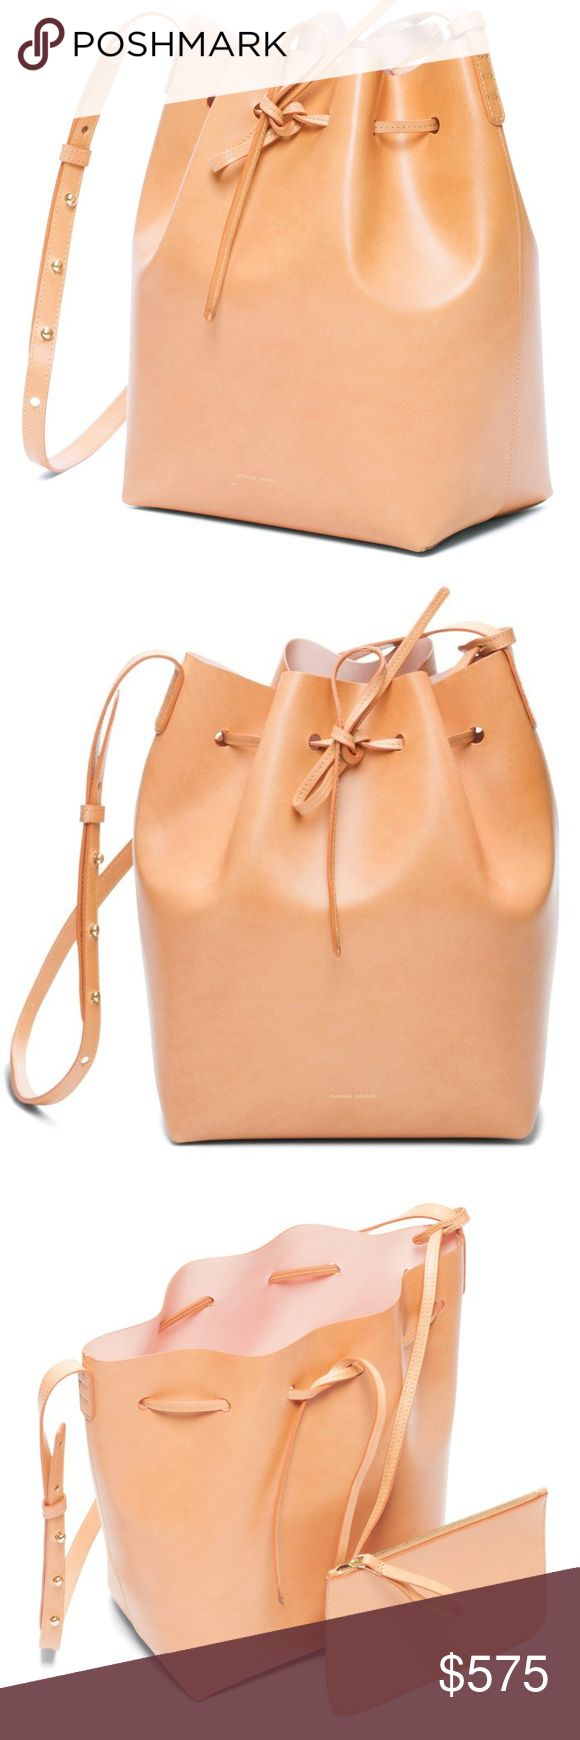 Mansur Gavriel Large Bucket Bag Camello Like New Mansur Gavriel Large Bucket Bag Camello Like New Carried only twice then received the black version. I adore this bag but wear way more black and can't justify two! There are a few little marks (will post pics soon) but those are characteristic of this bag and will continue to happen, only making it look more street-stylish as you wear it in! In like new condition and includes zip pouch and dust bag. Mansur Gavriel Bags